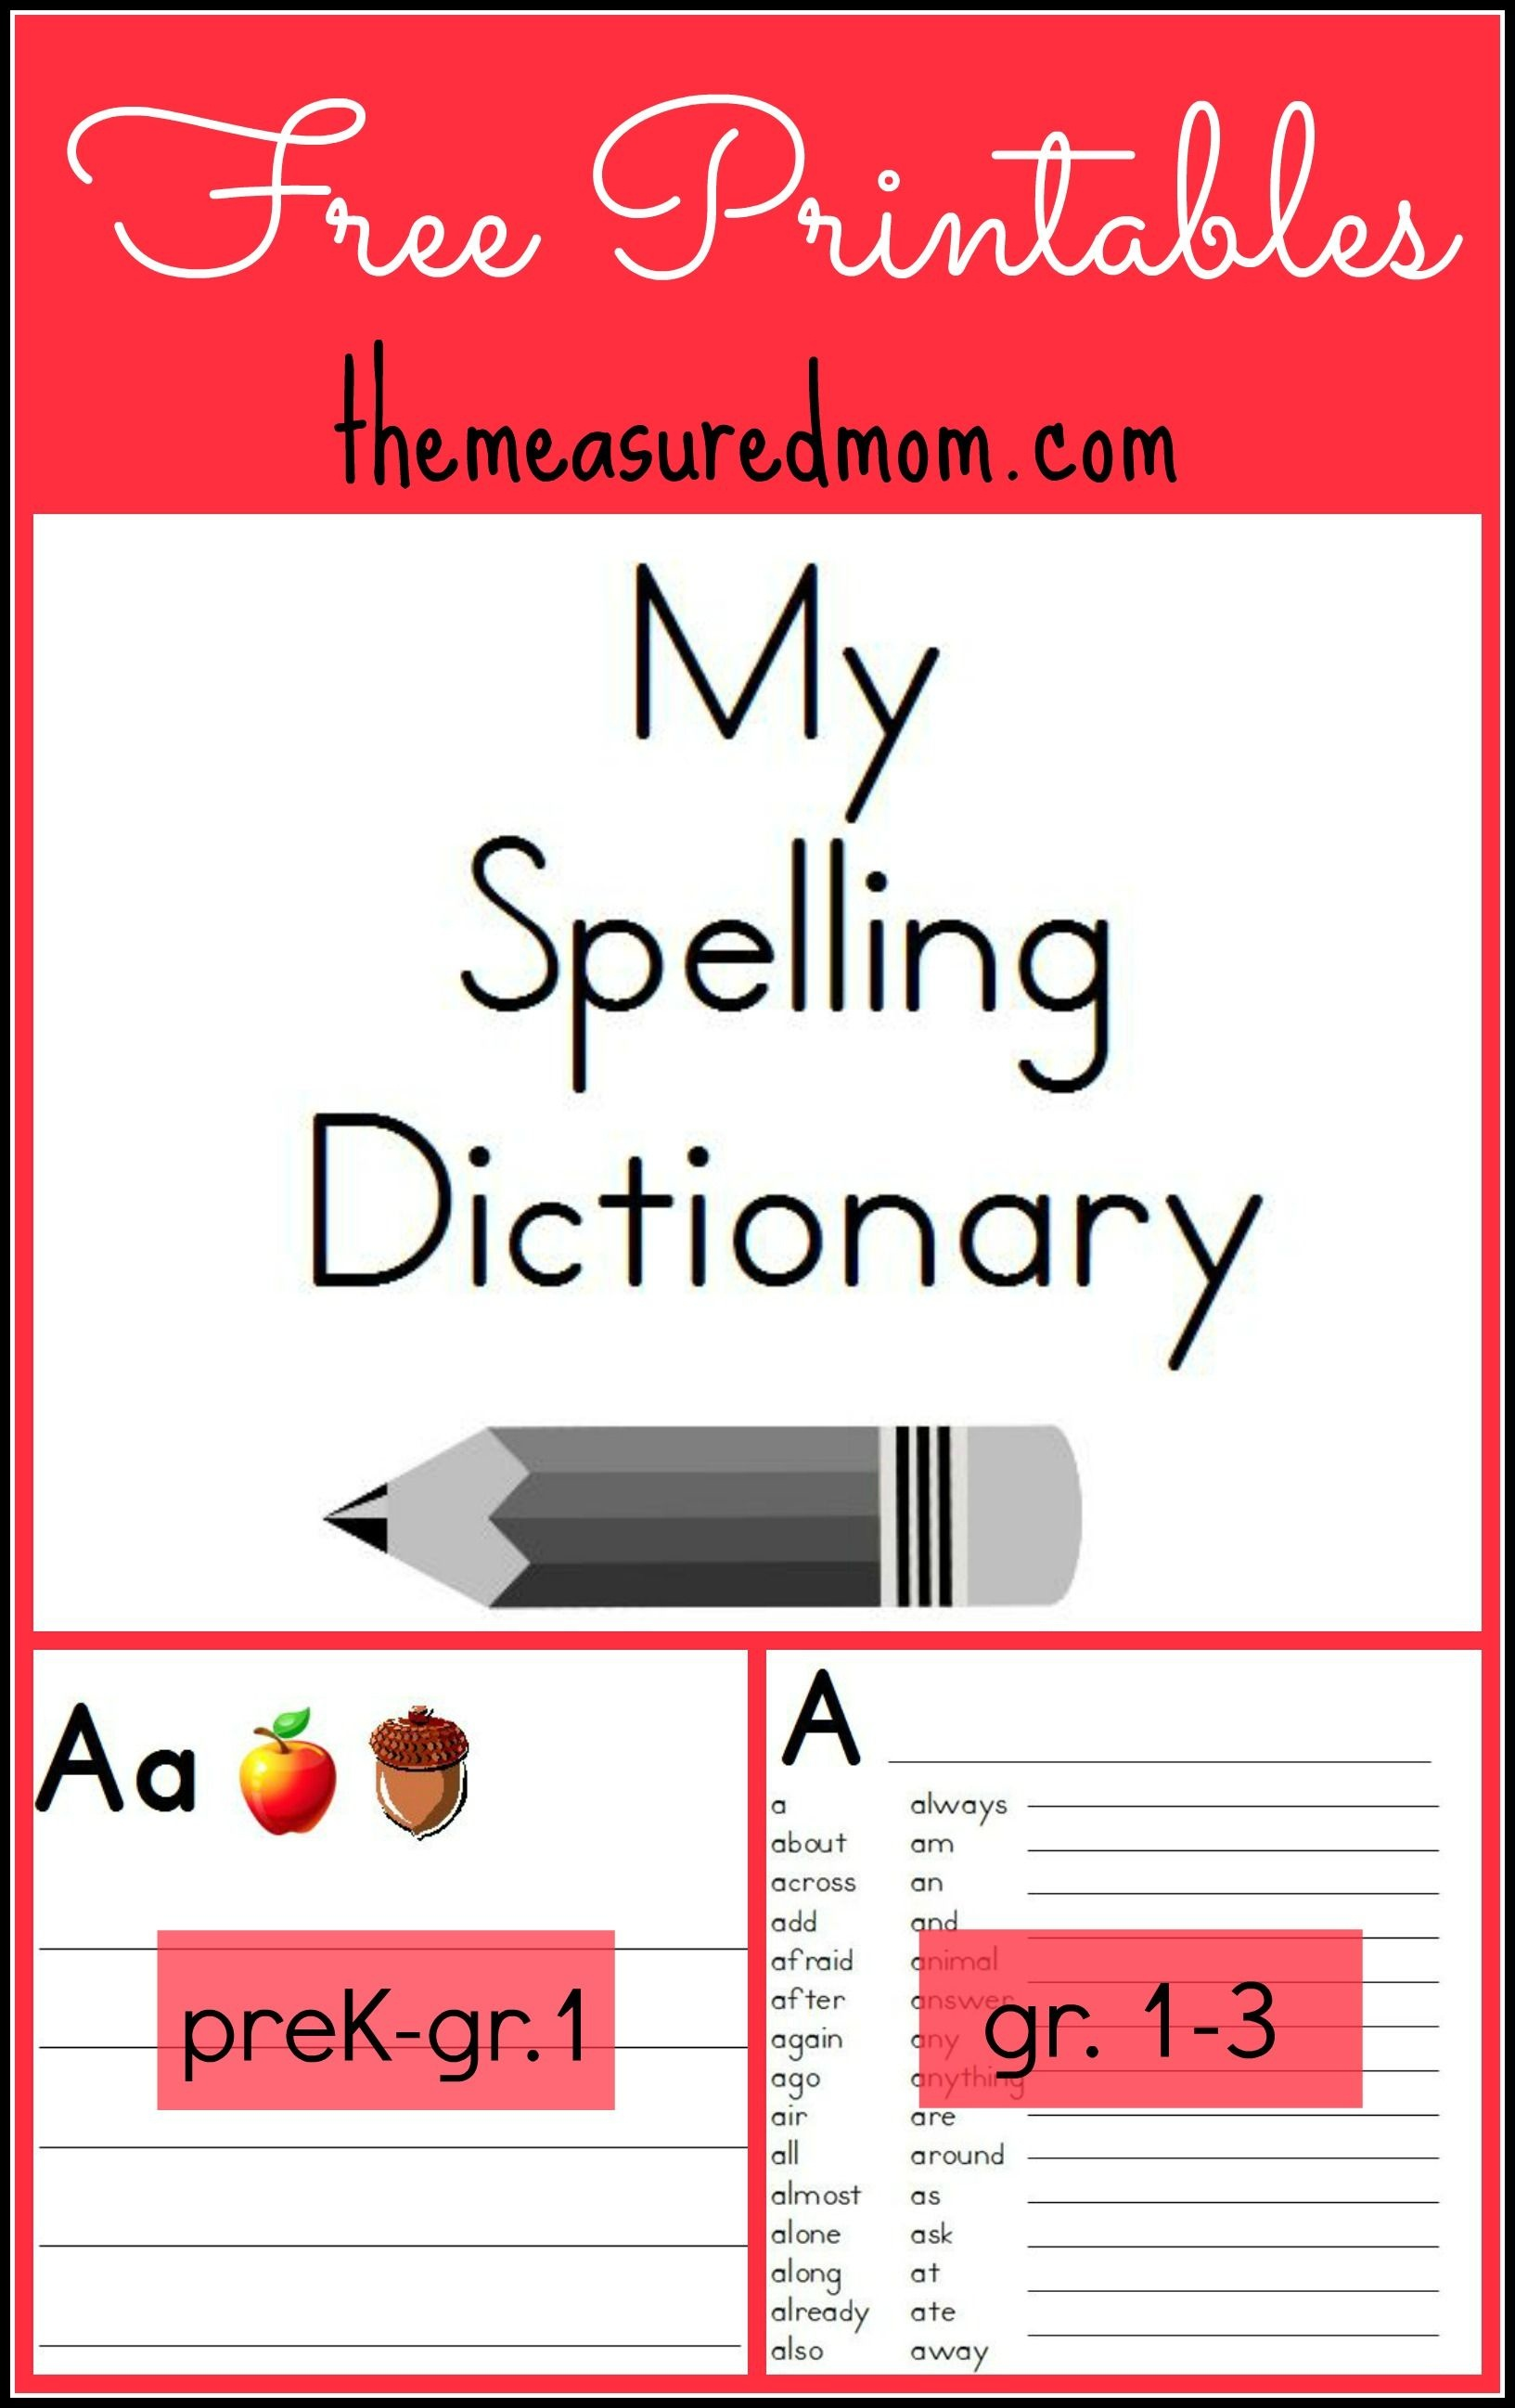 Printable Spelling Dictionary For Kids   Free Printables - Free Printable Picture Dictionary For Kids